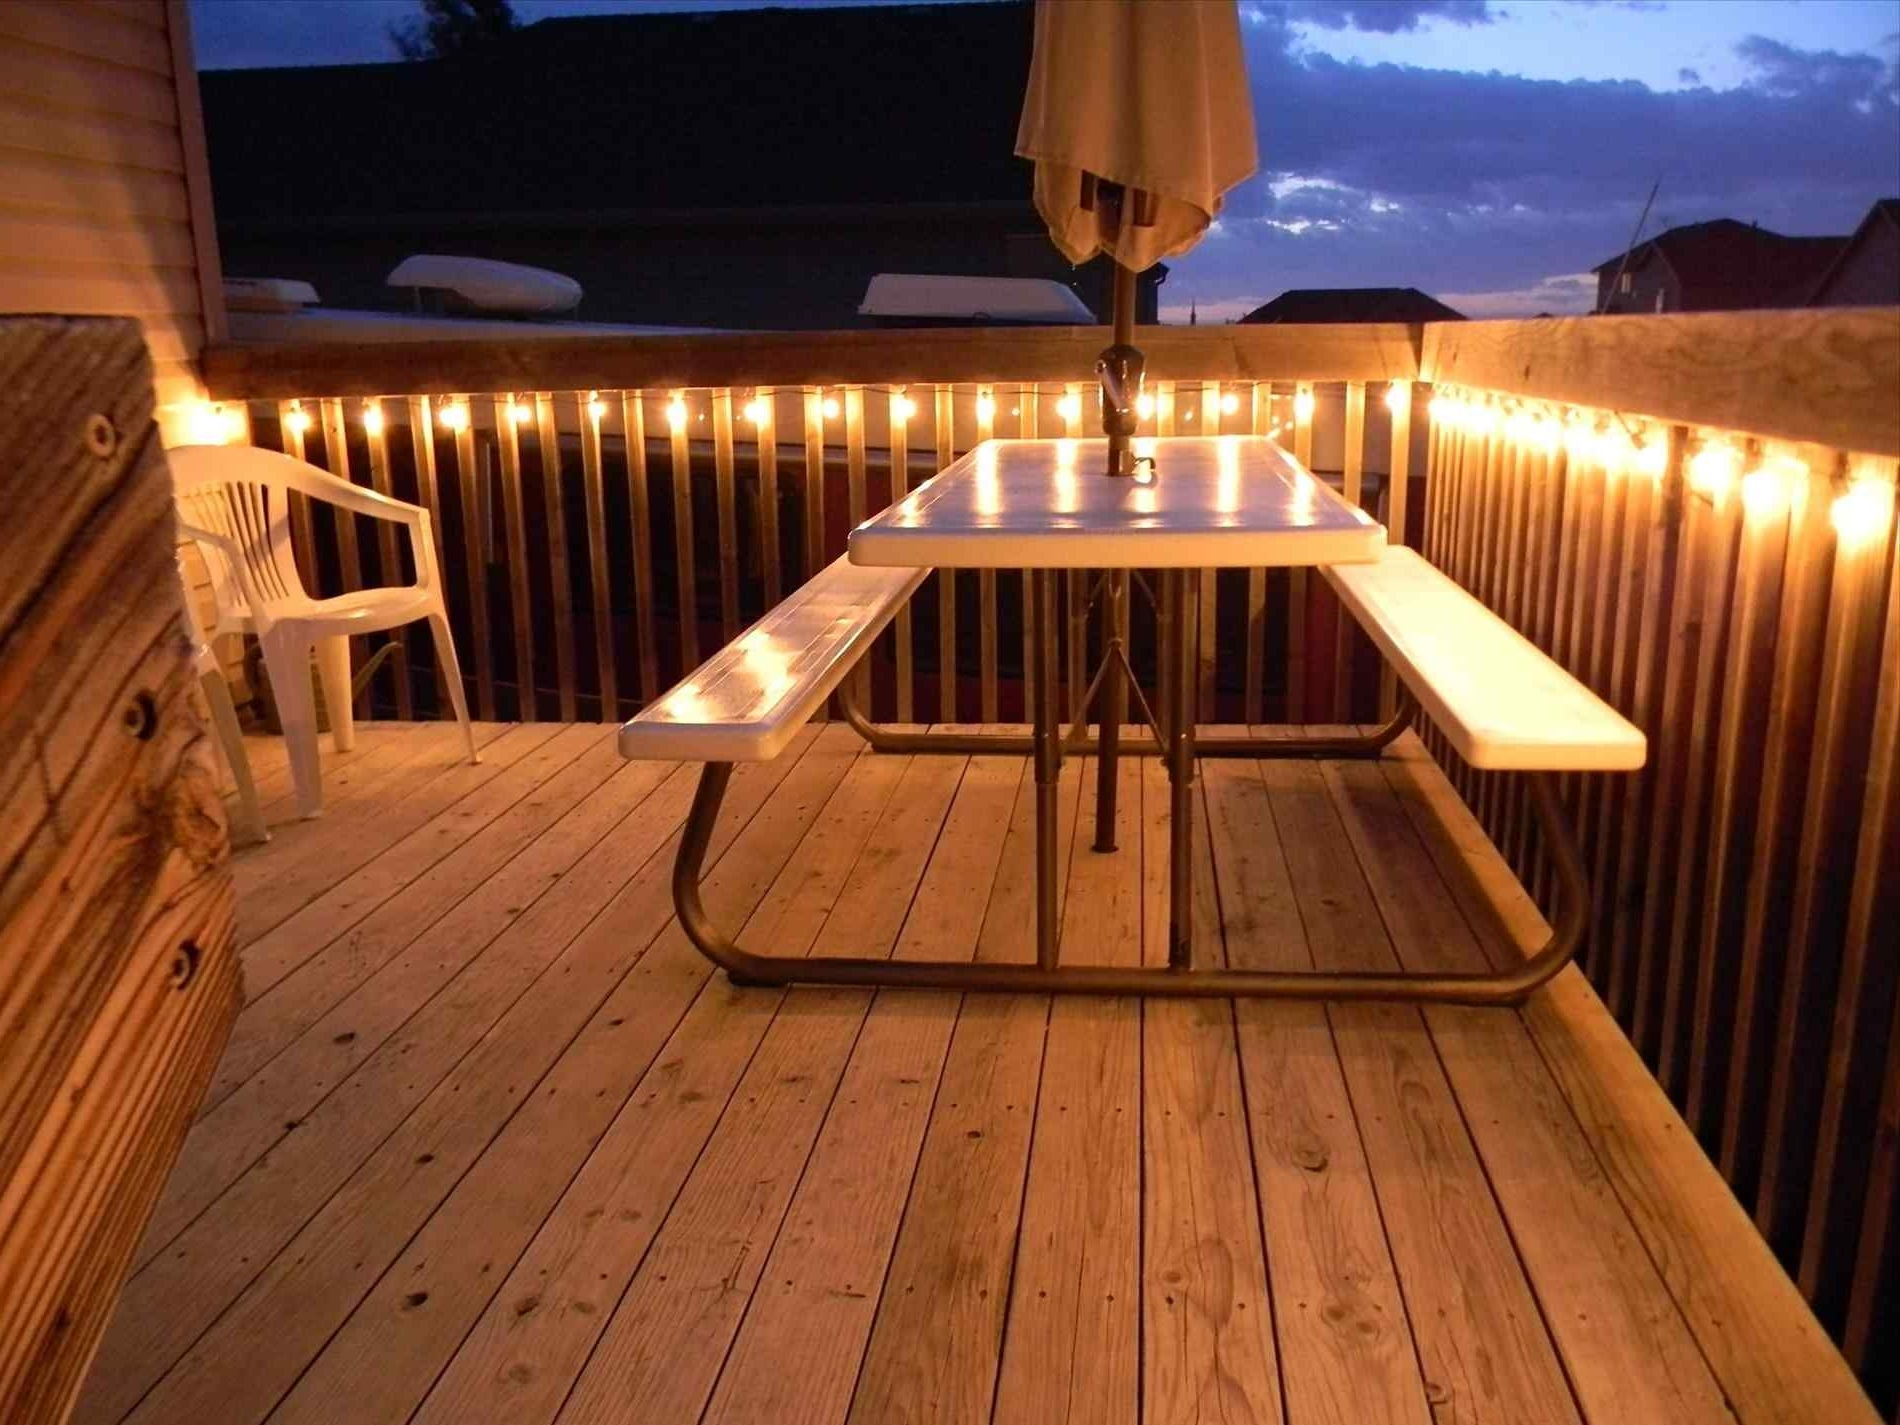 Outdoor Hanging Deck Lights In Most Recent The Images Collection Of Ideas For Before Next Spring Season Deck (View 15 of 20)